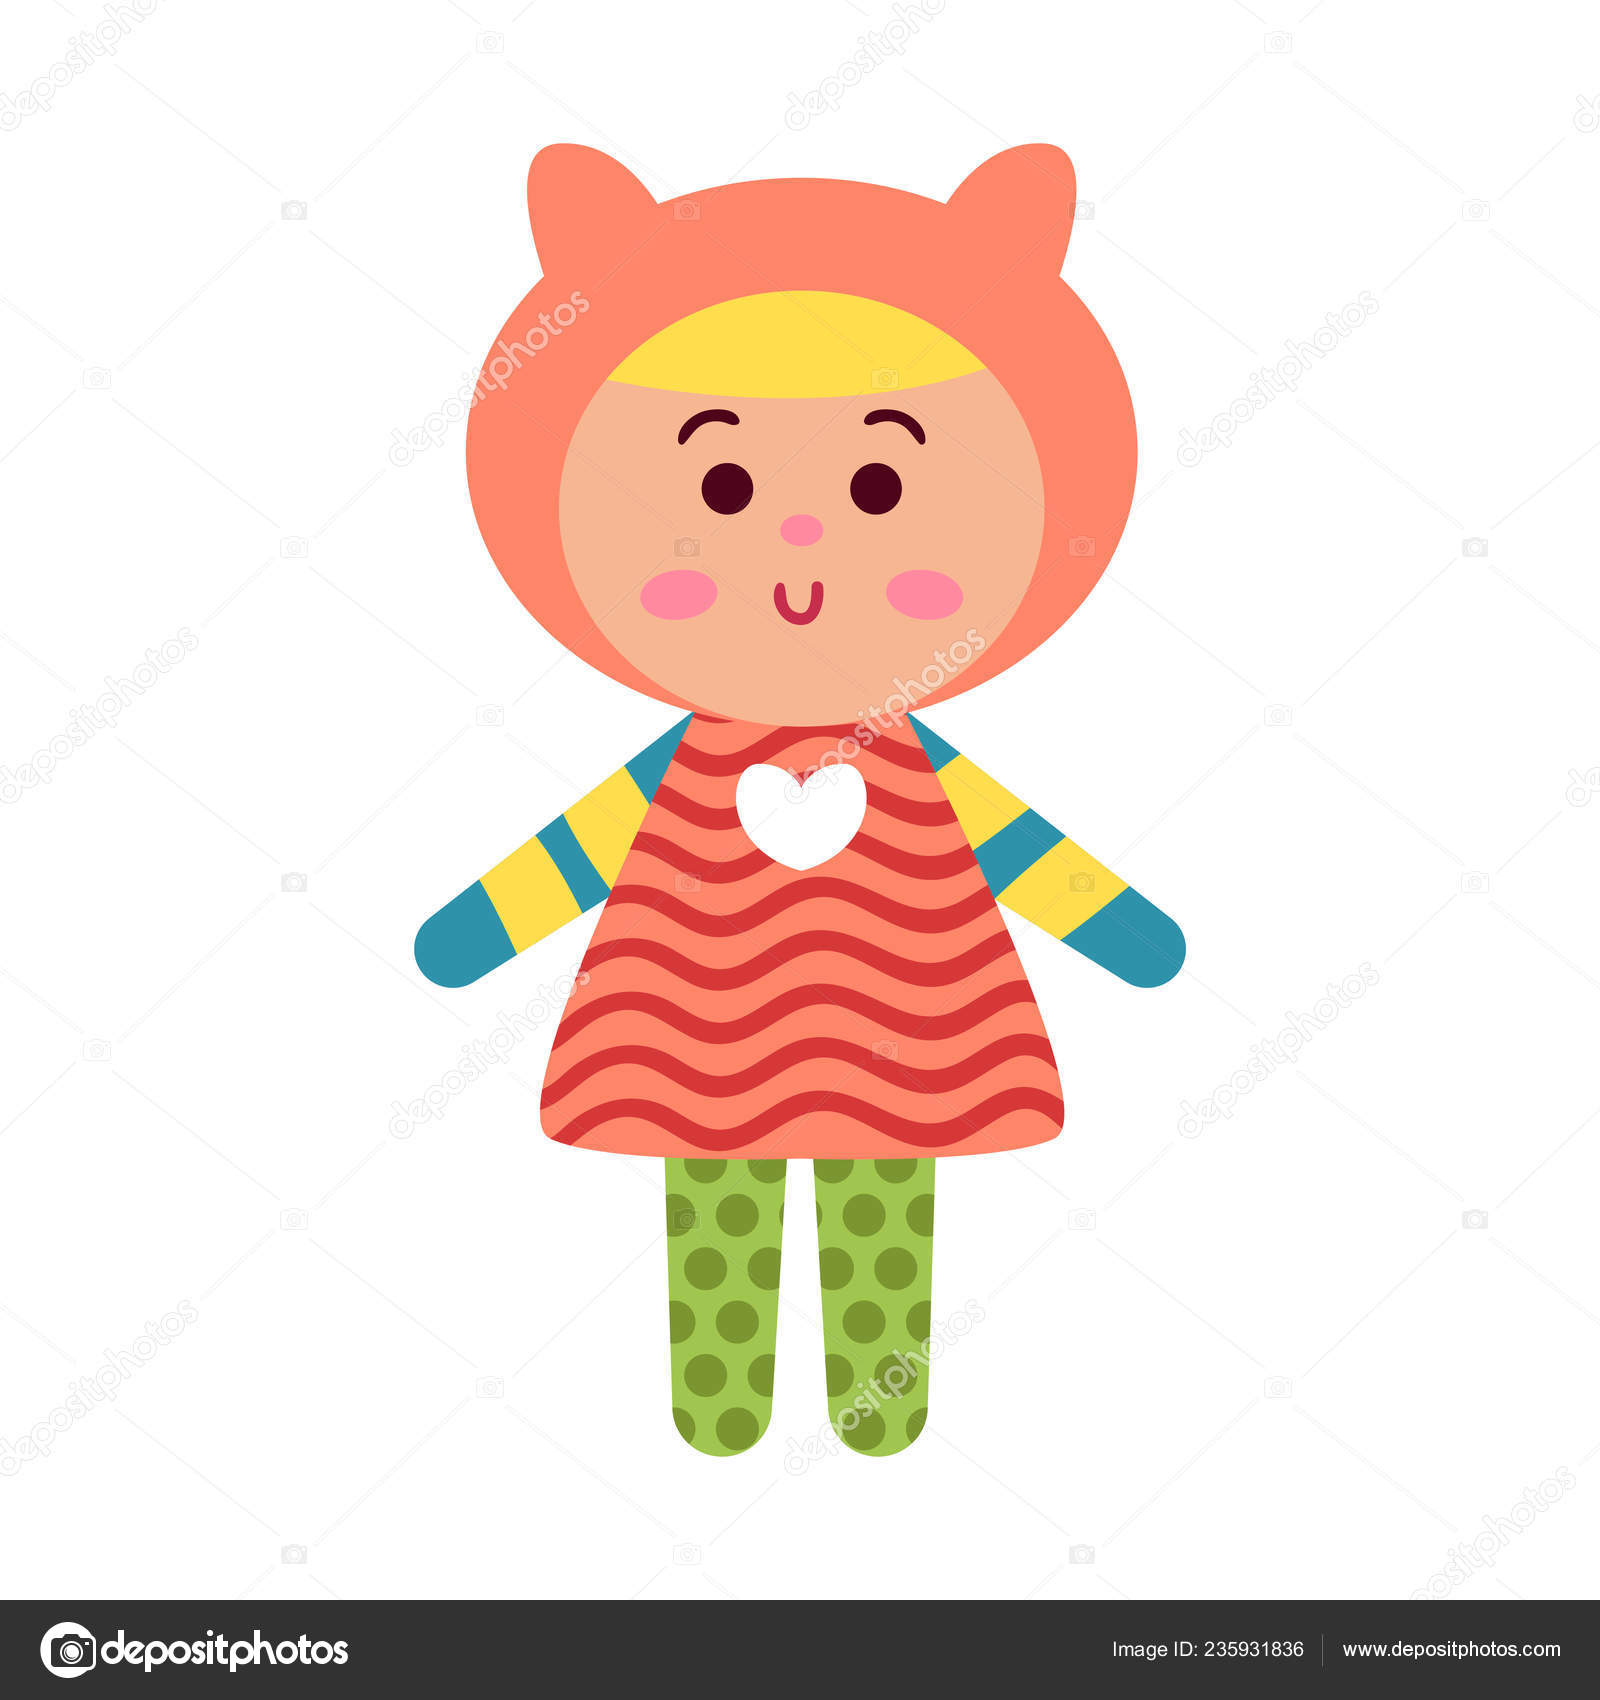 Cute Cartoon Colorful Baby Doll Toy Vector Illustration Stock